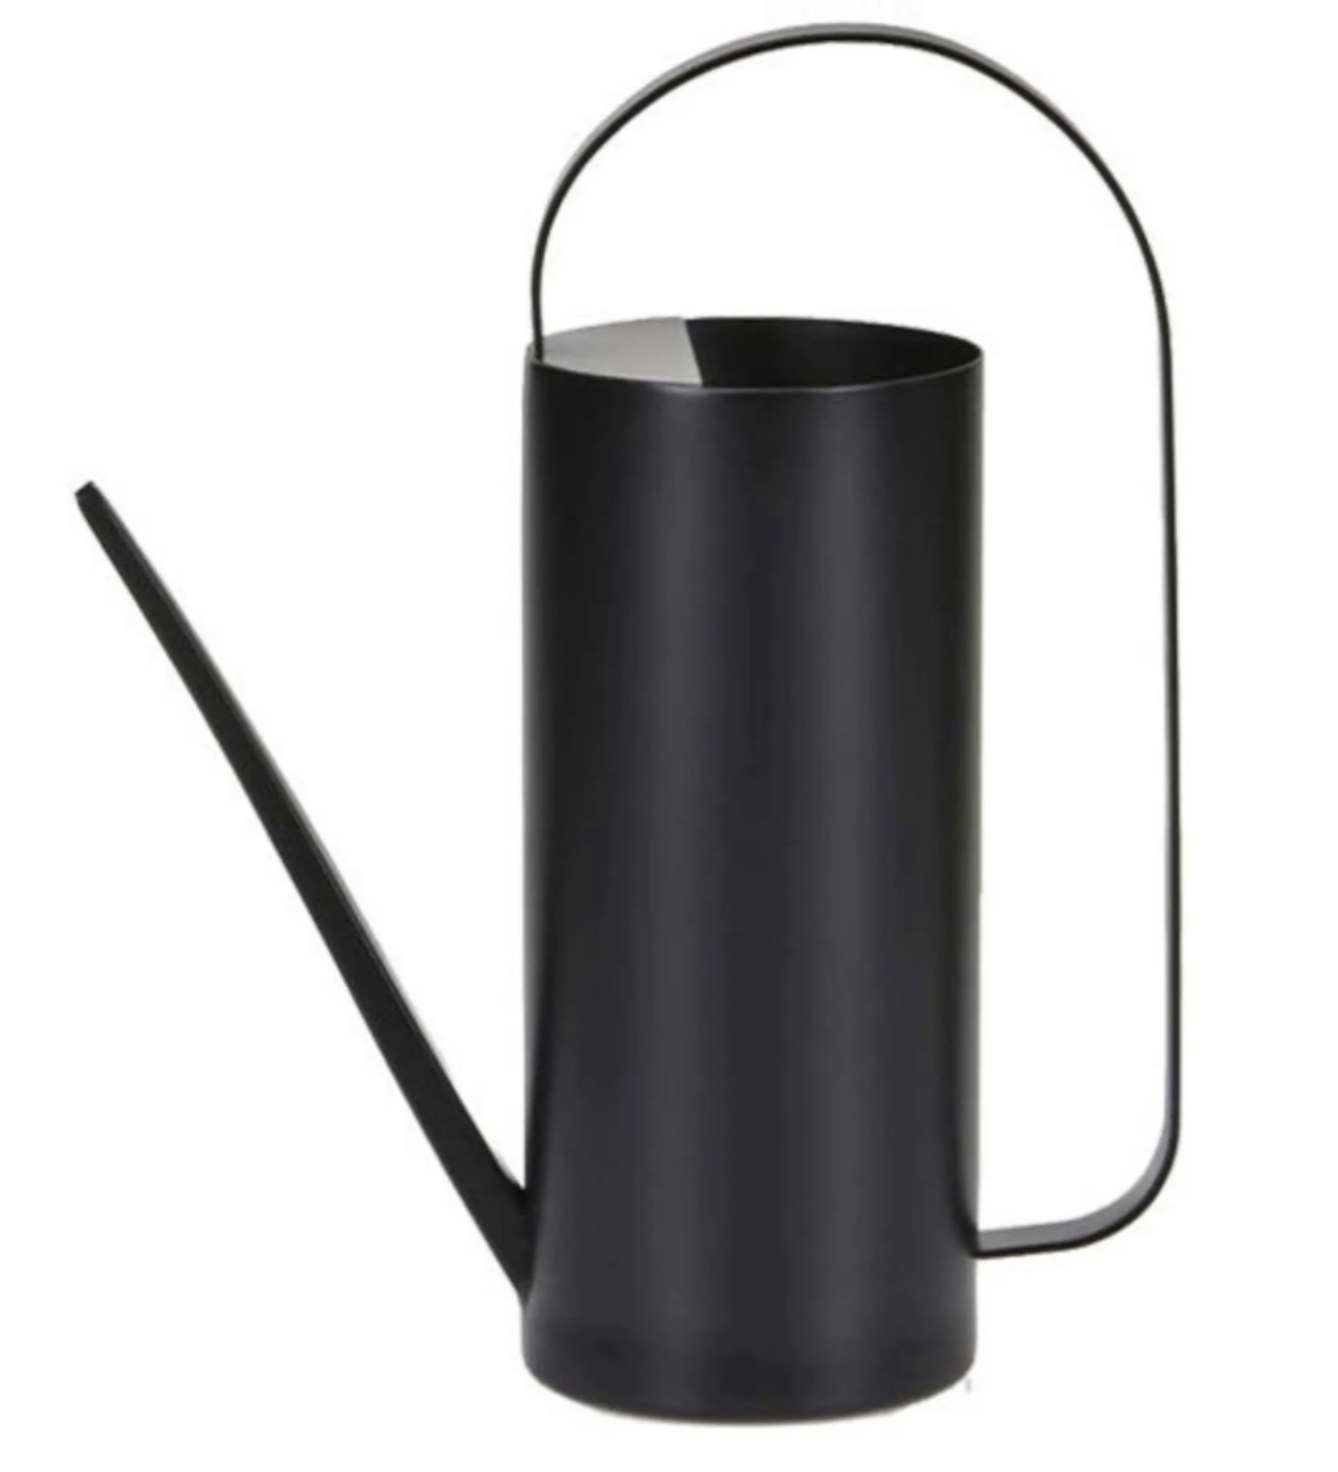 a tall cylindrical watering can with a thin spot and modern handle. In the color black